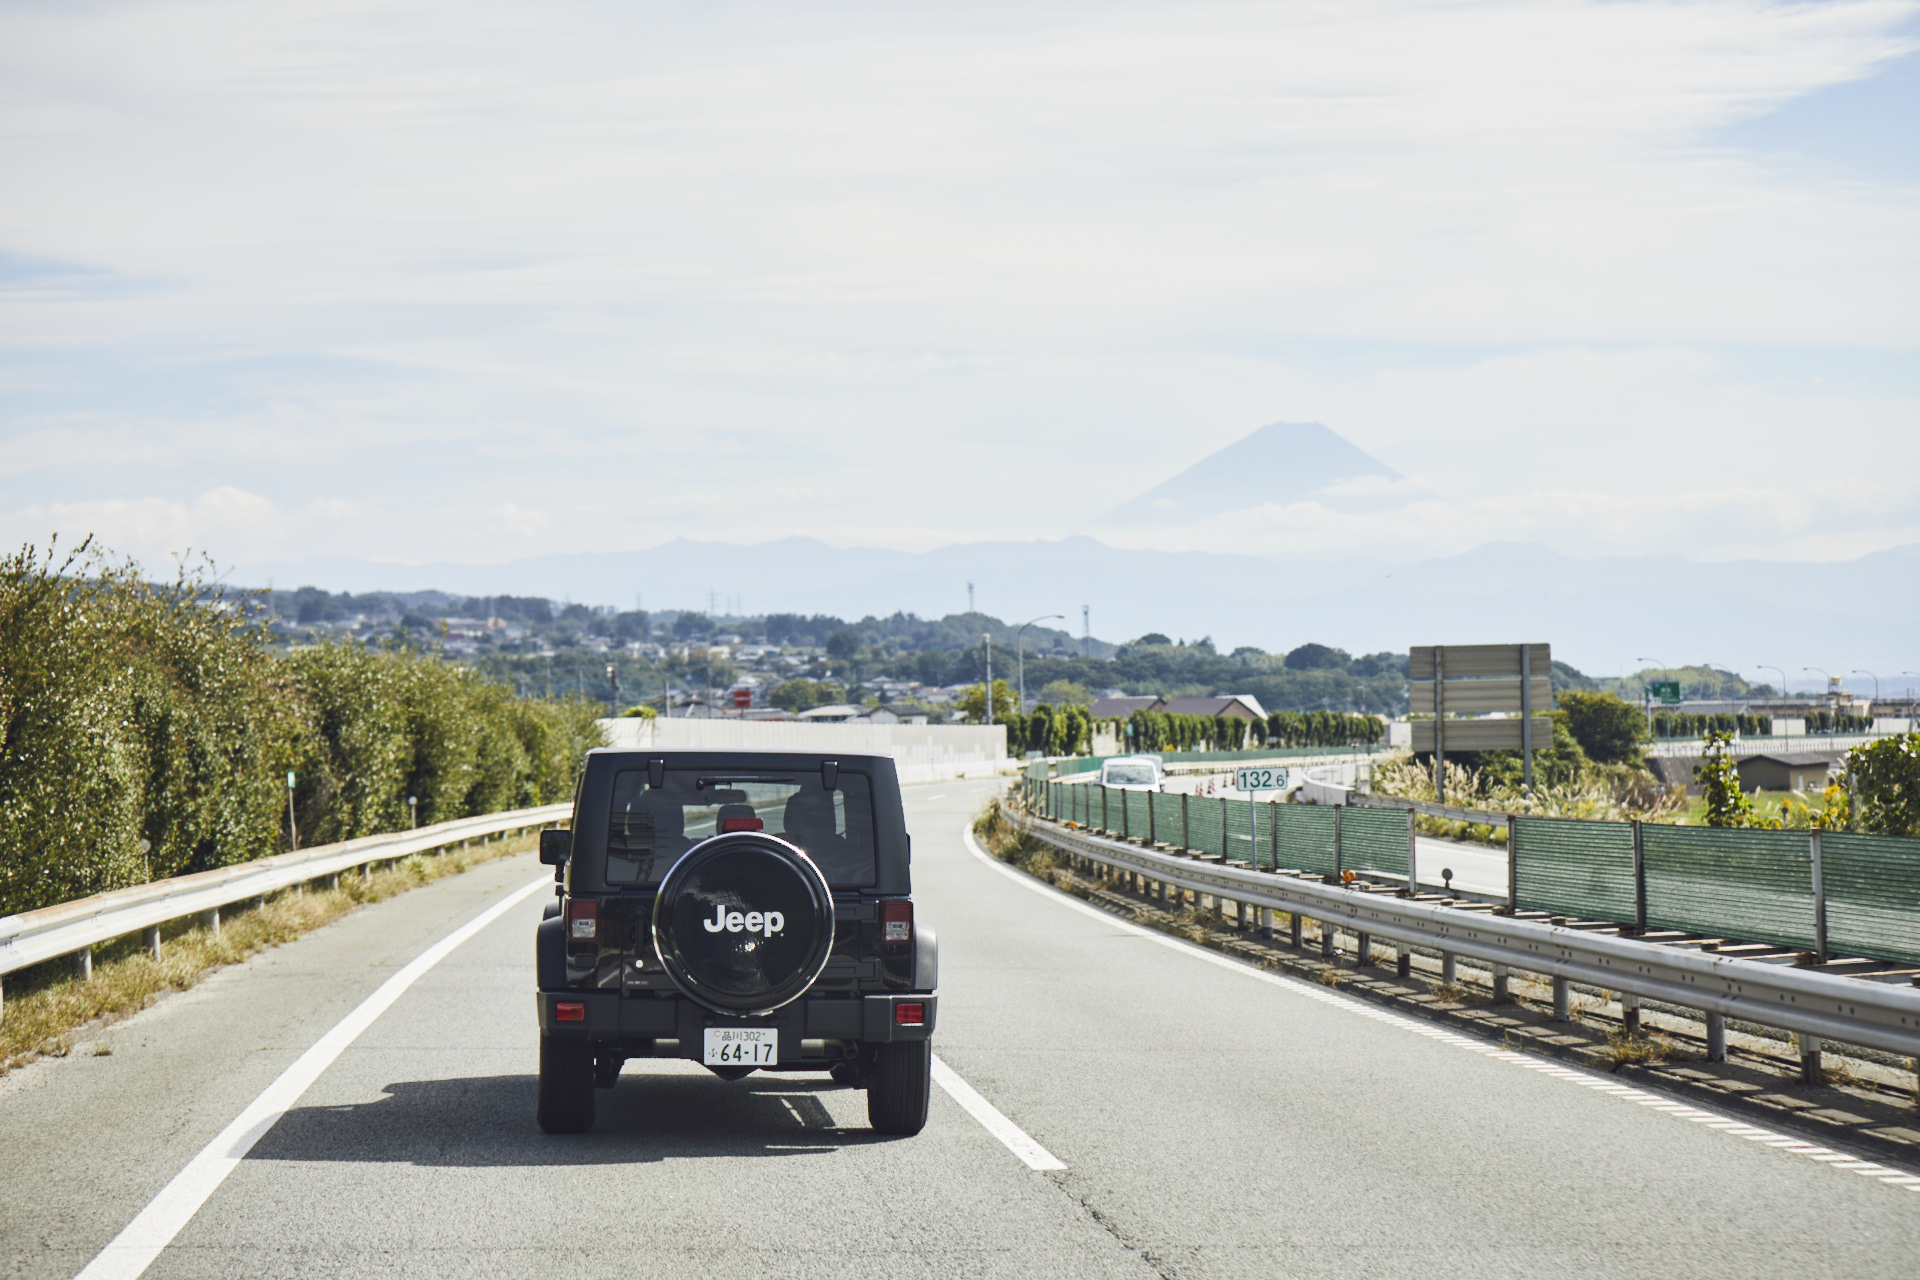 ho_104641 My Jeep®,My Life. ボクとJeep®の暮らしかた。女優・太田莉菜